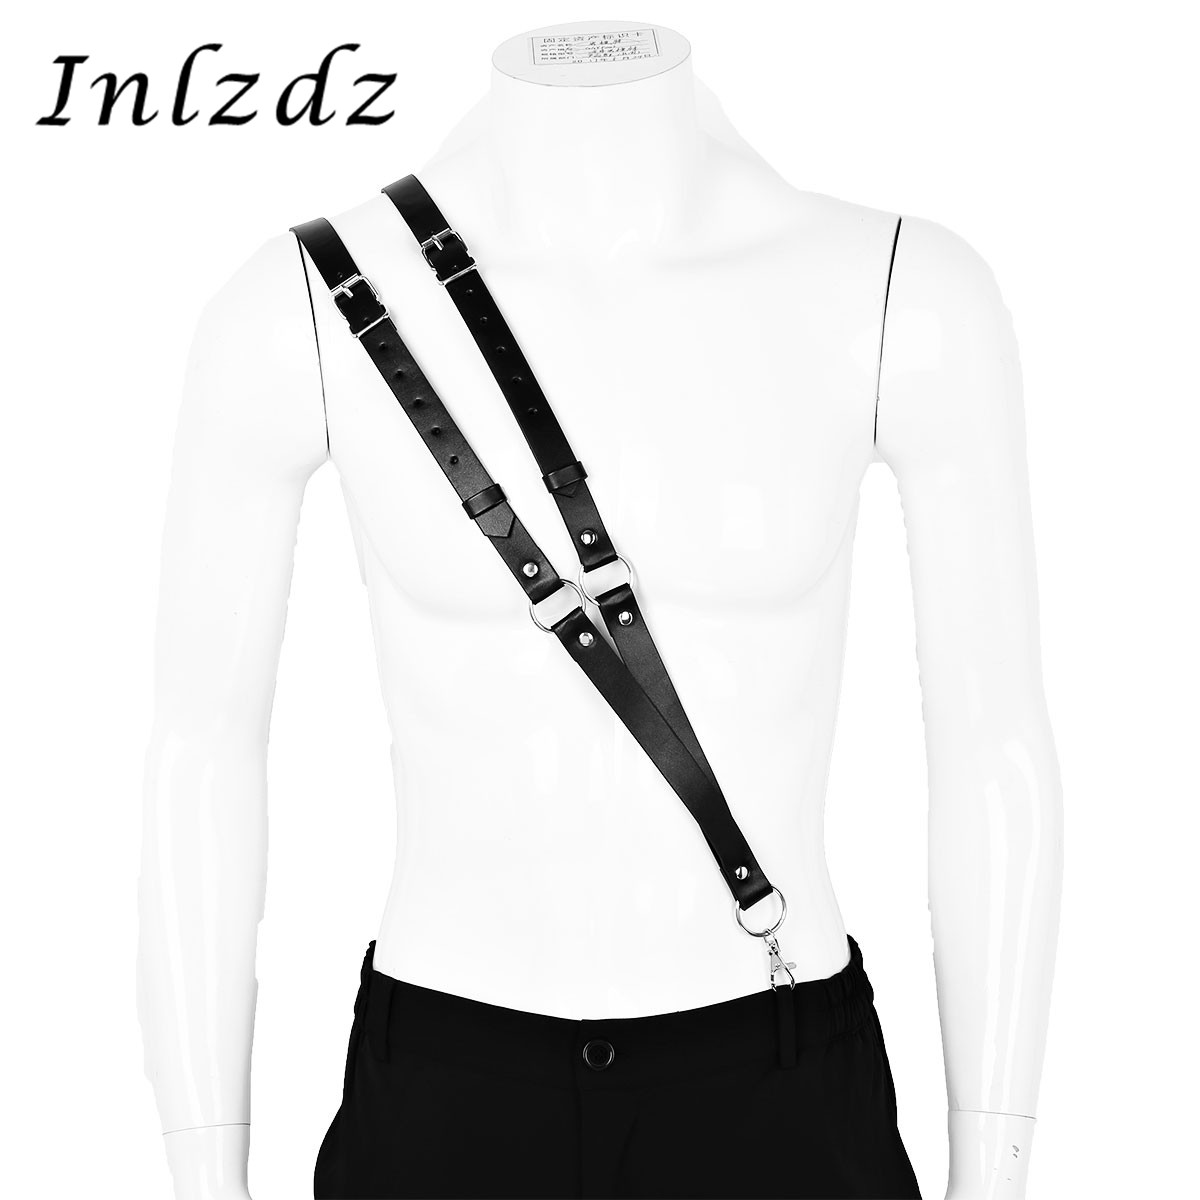 Harness Mens Imitation Leather Double Straps Single-Shoulder Braces Adjustable Suspender Harness Belt With Buckles And O Rings